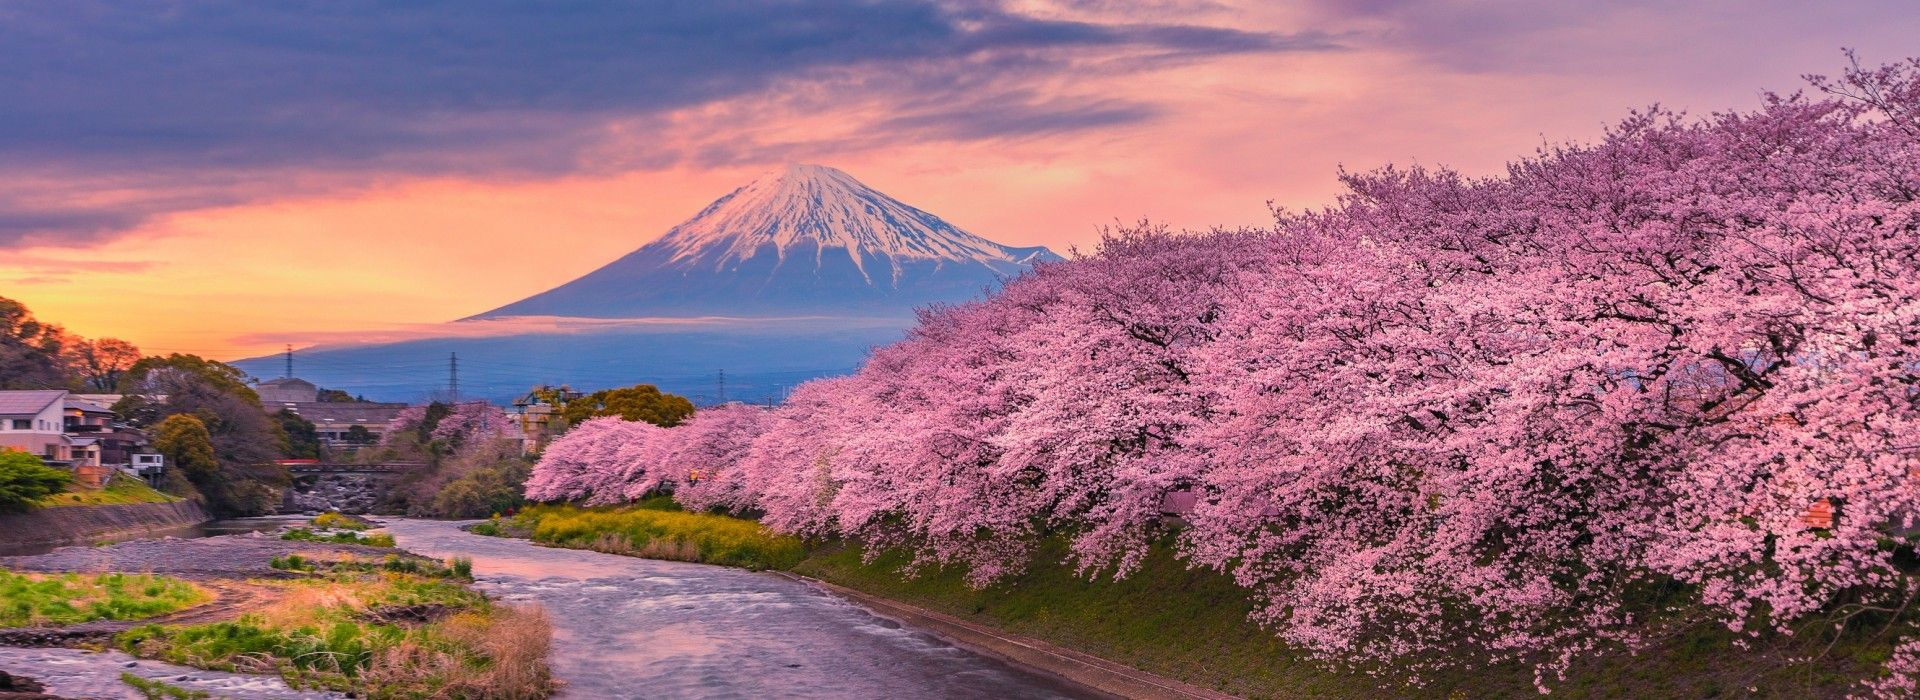 Air tours, road trips and transfers in Tokyo